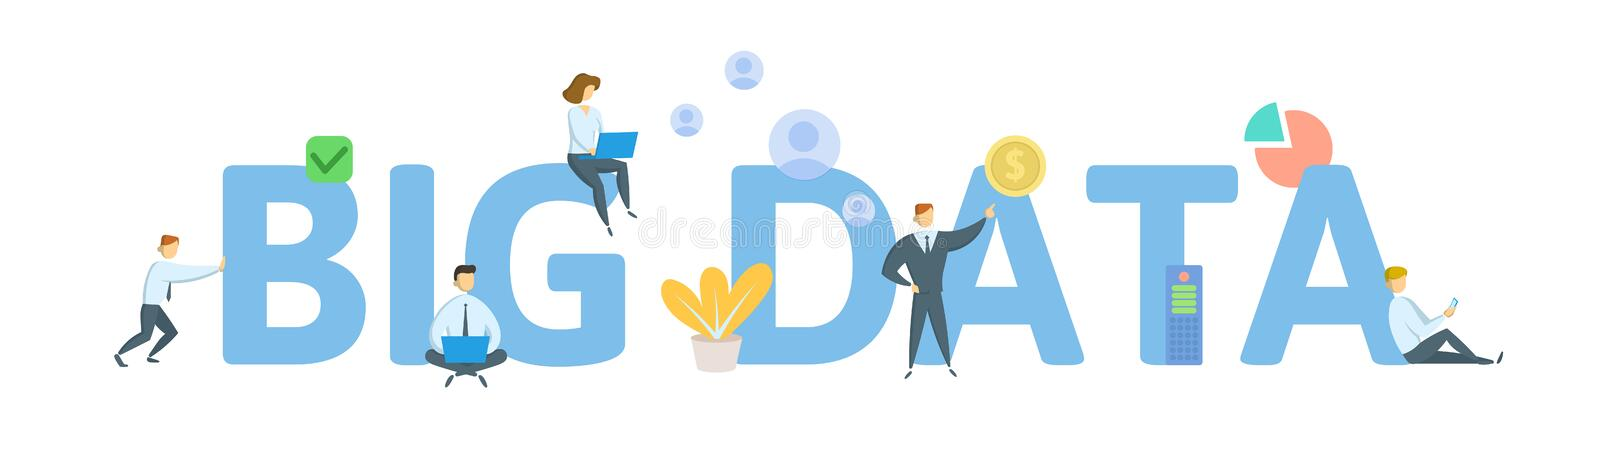 BIG DATA. Concept with keywords, letters, and icons. Flat vector illustration. Isolated on white background. royalty free illustration